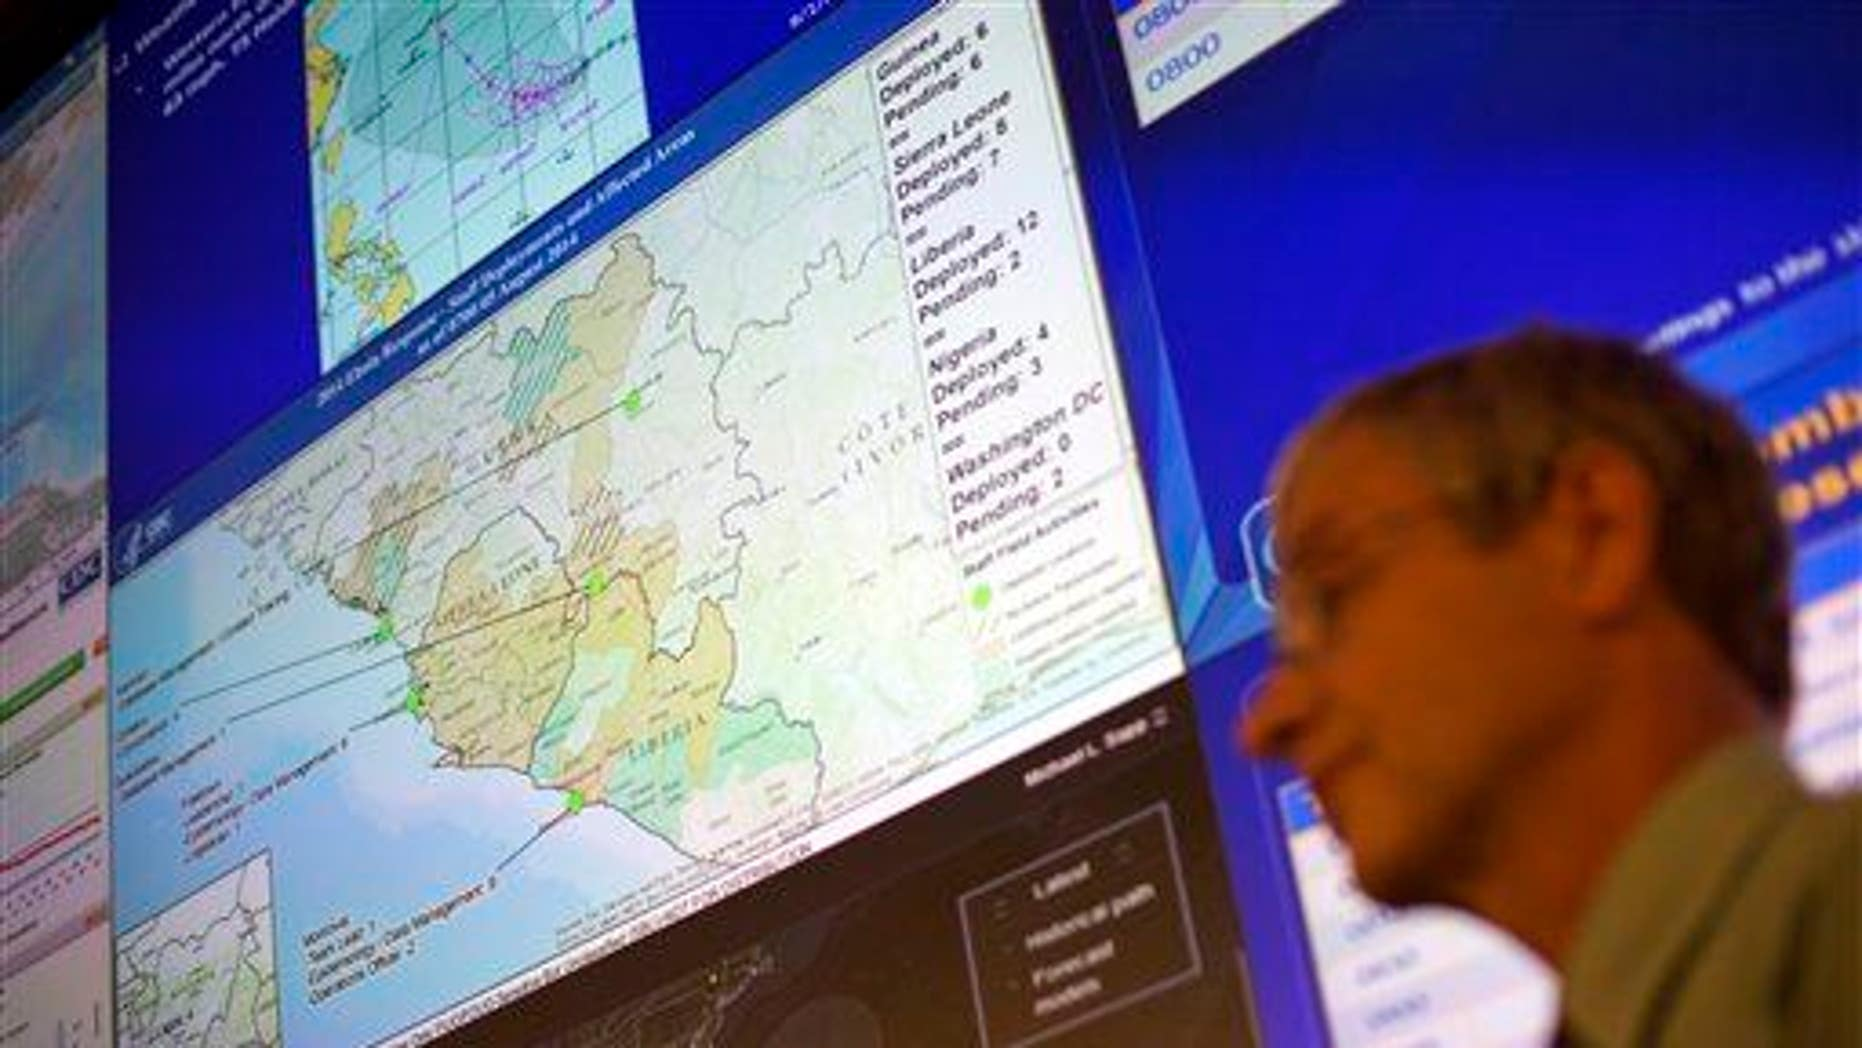 A CDC official stands under a map showing the agency's deployment of workers in West Africa at the agency's Emergency Operations Center, Tuesday, Aug. 5, 2014, in Atlanta.